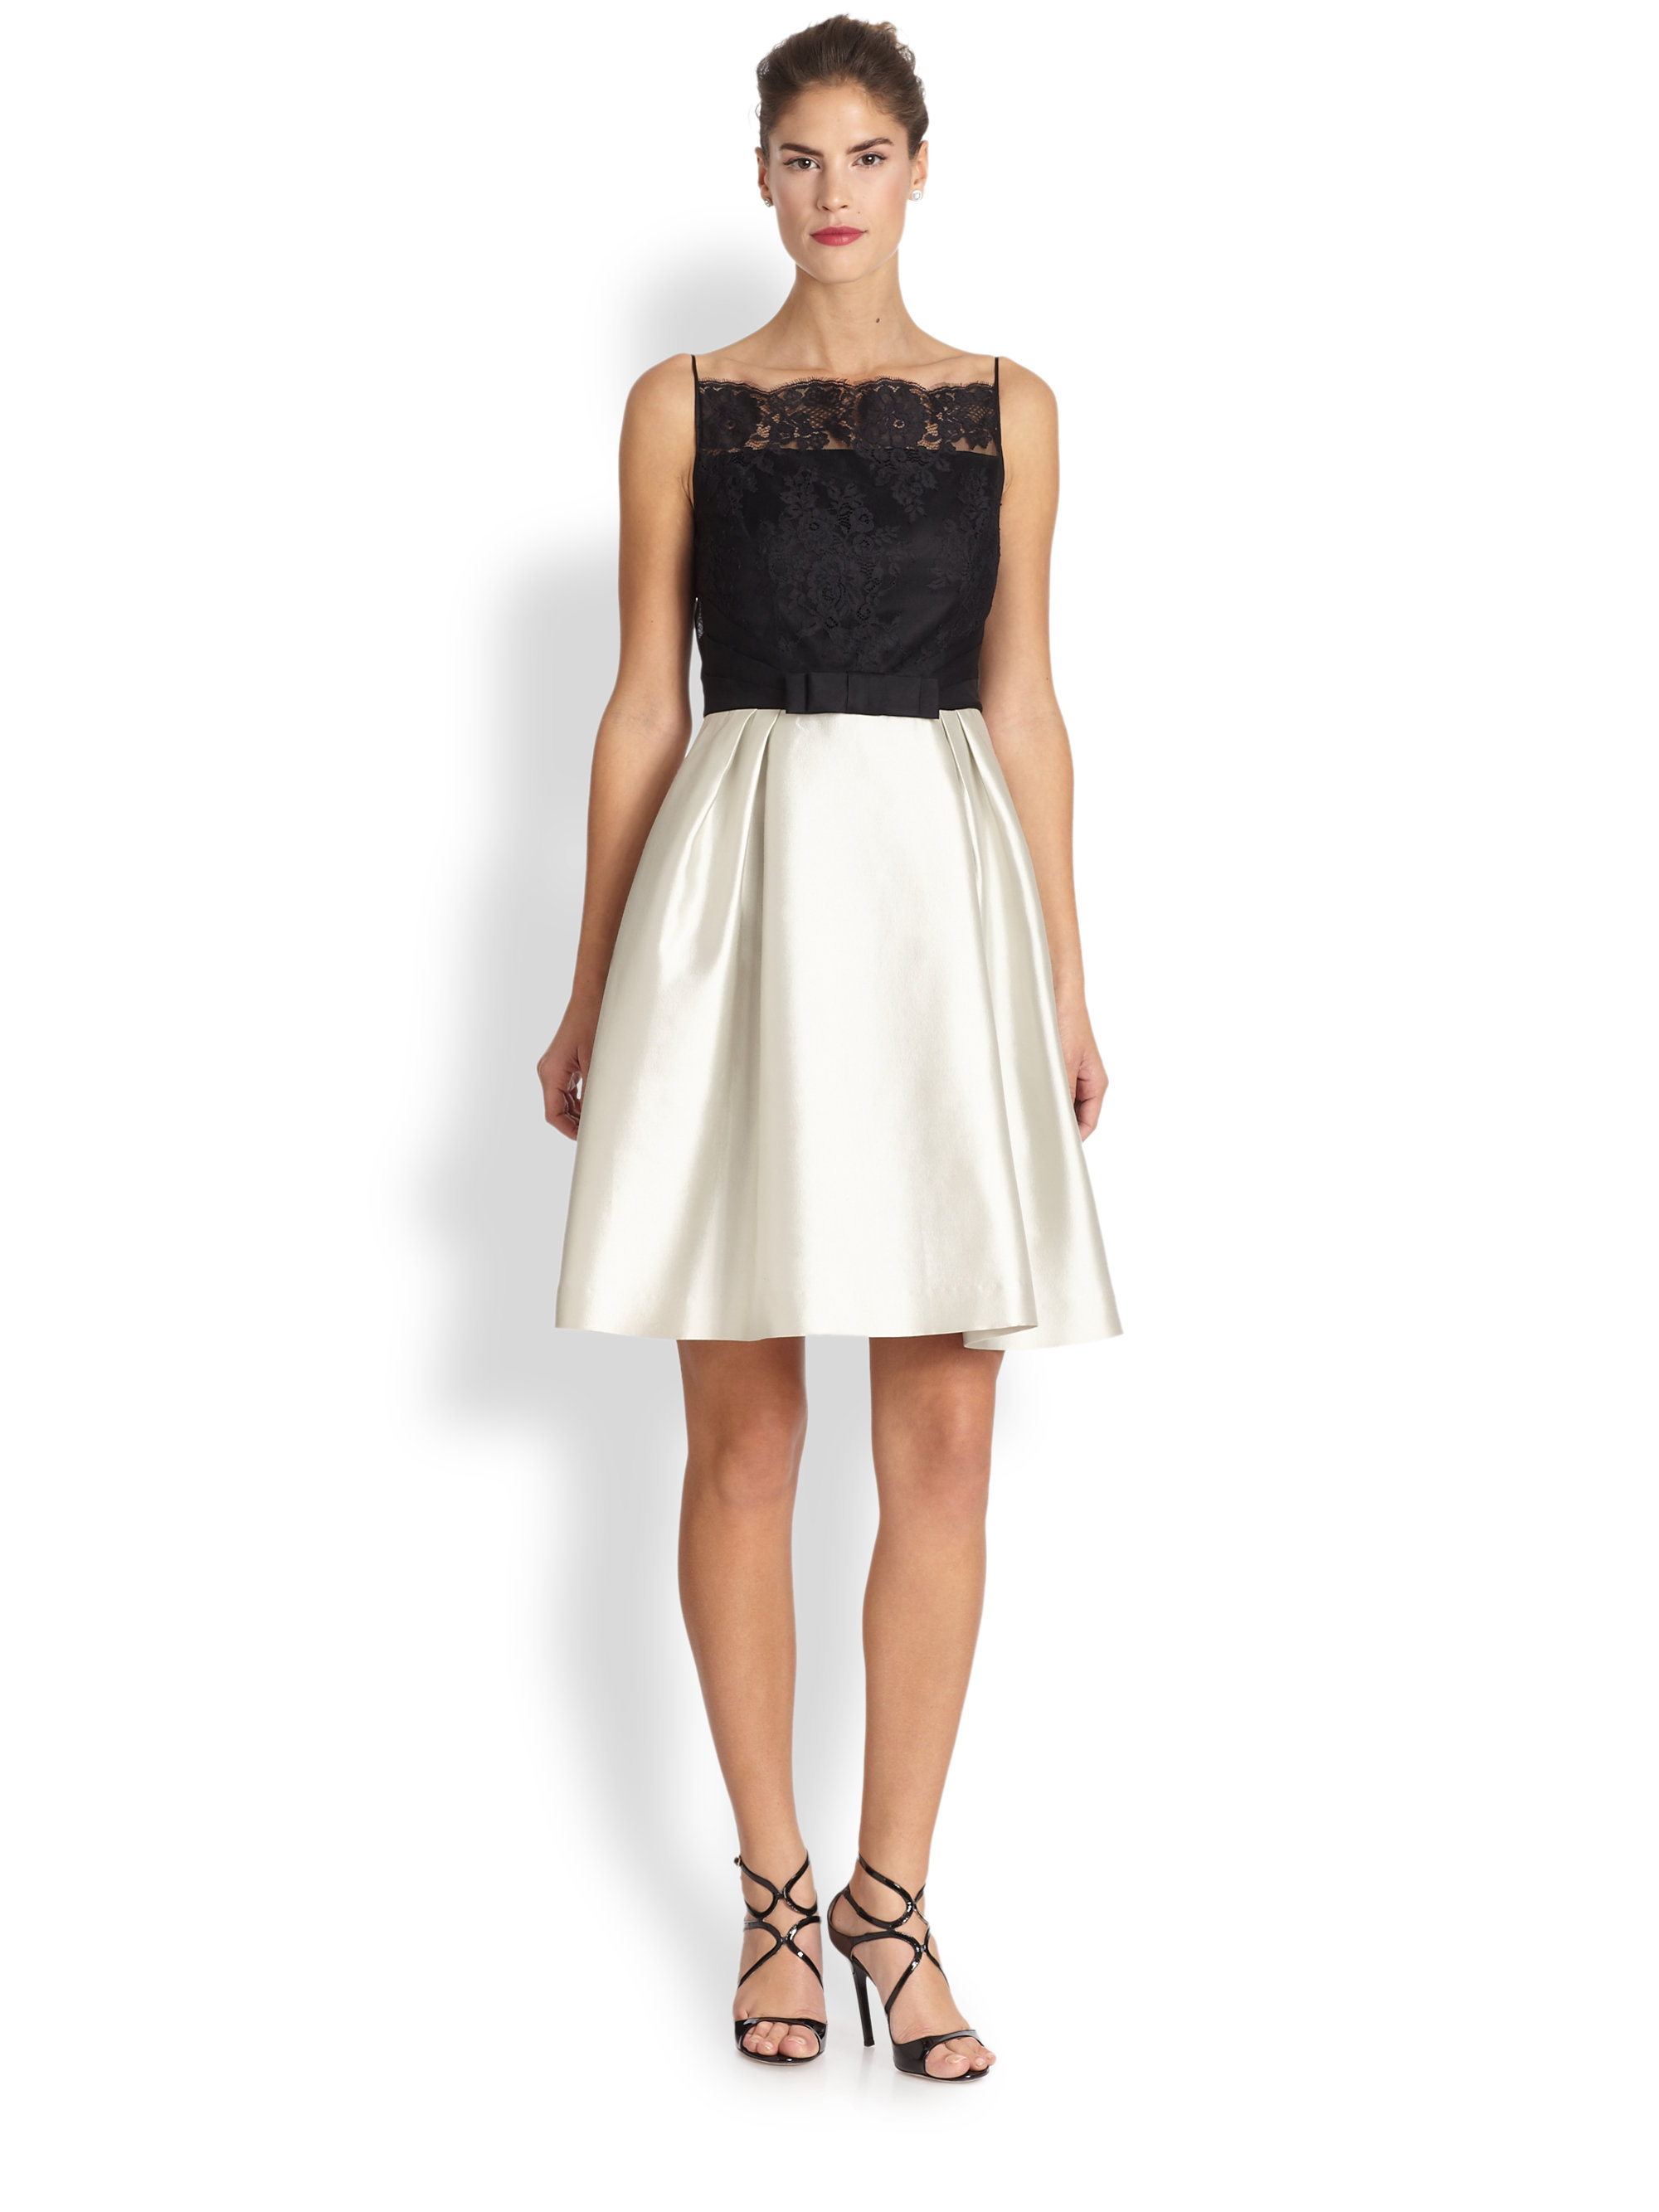 Teri Jon Cocktail Dresses - Long Dresses Online